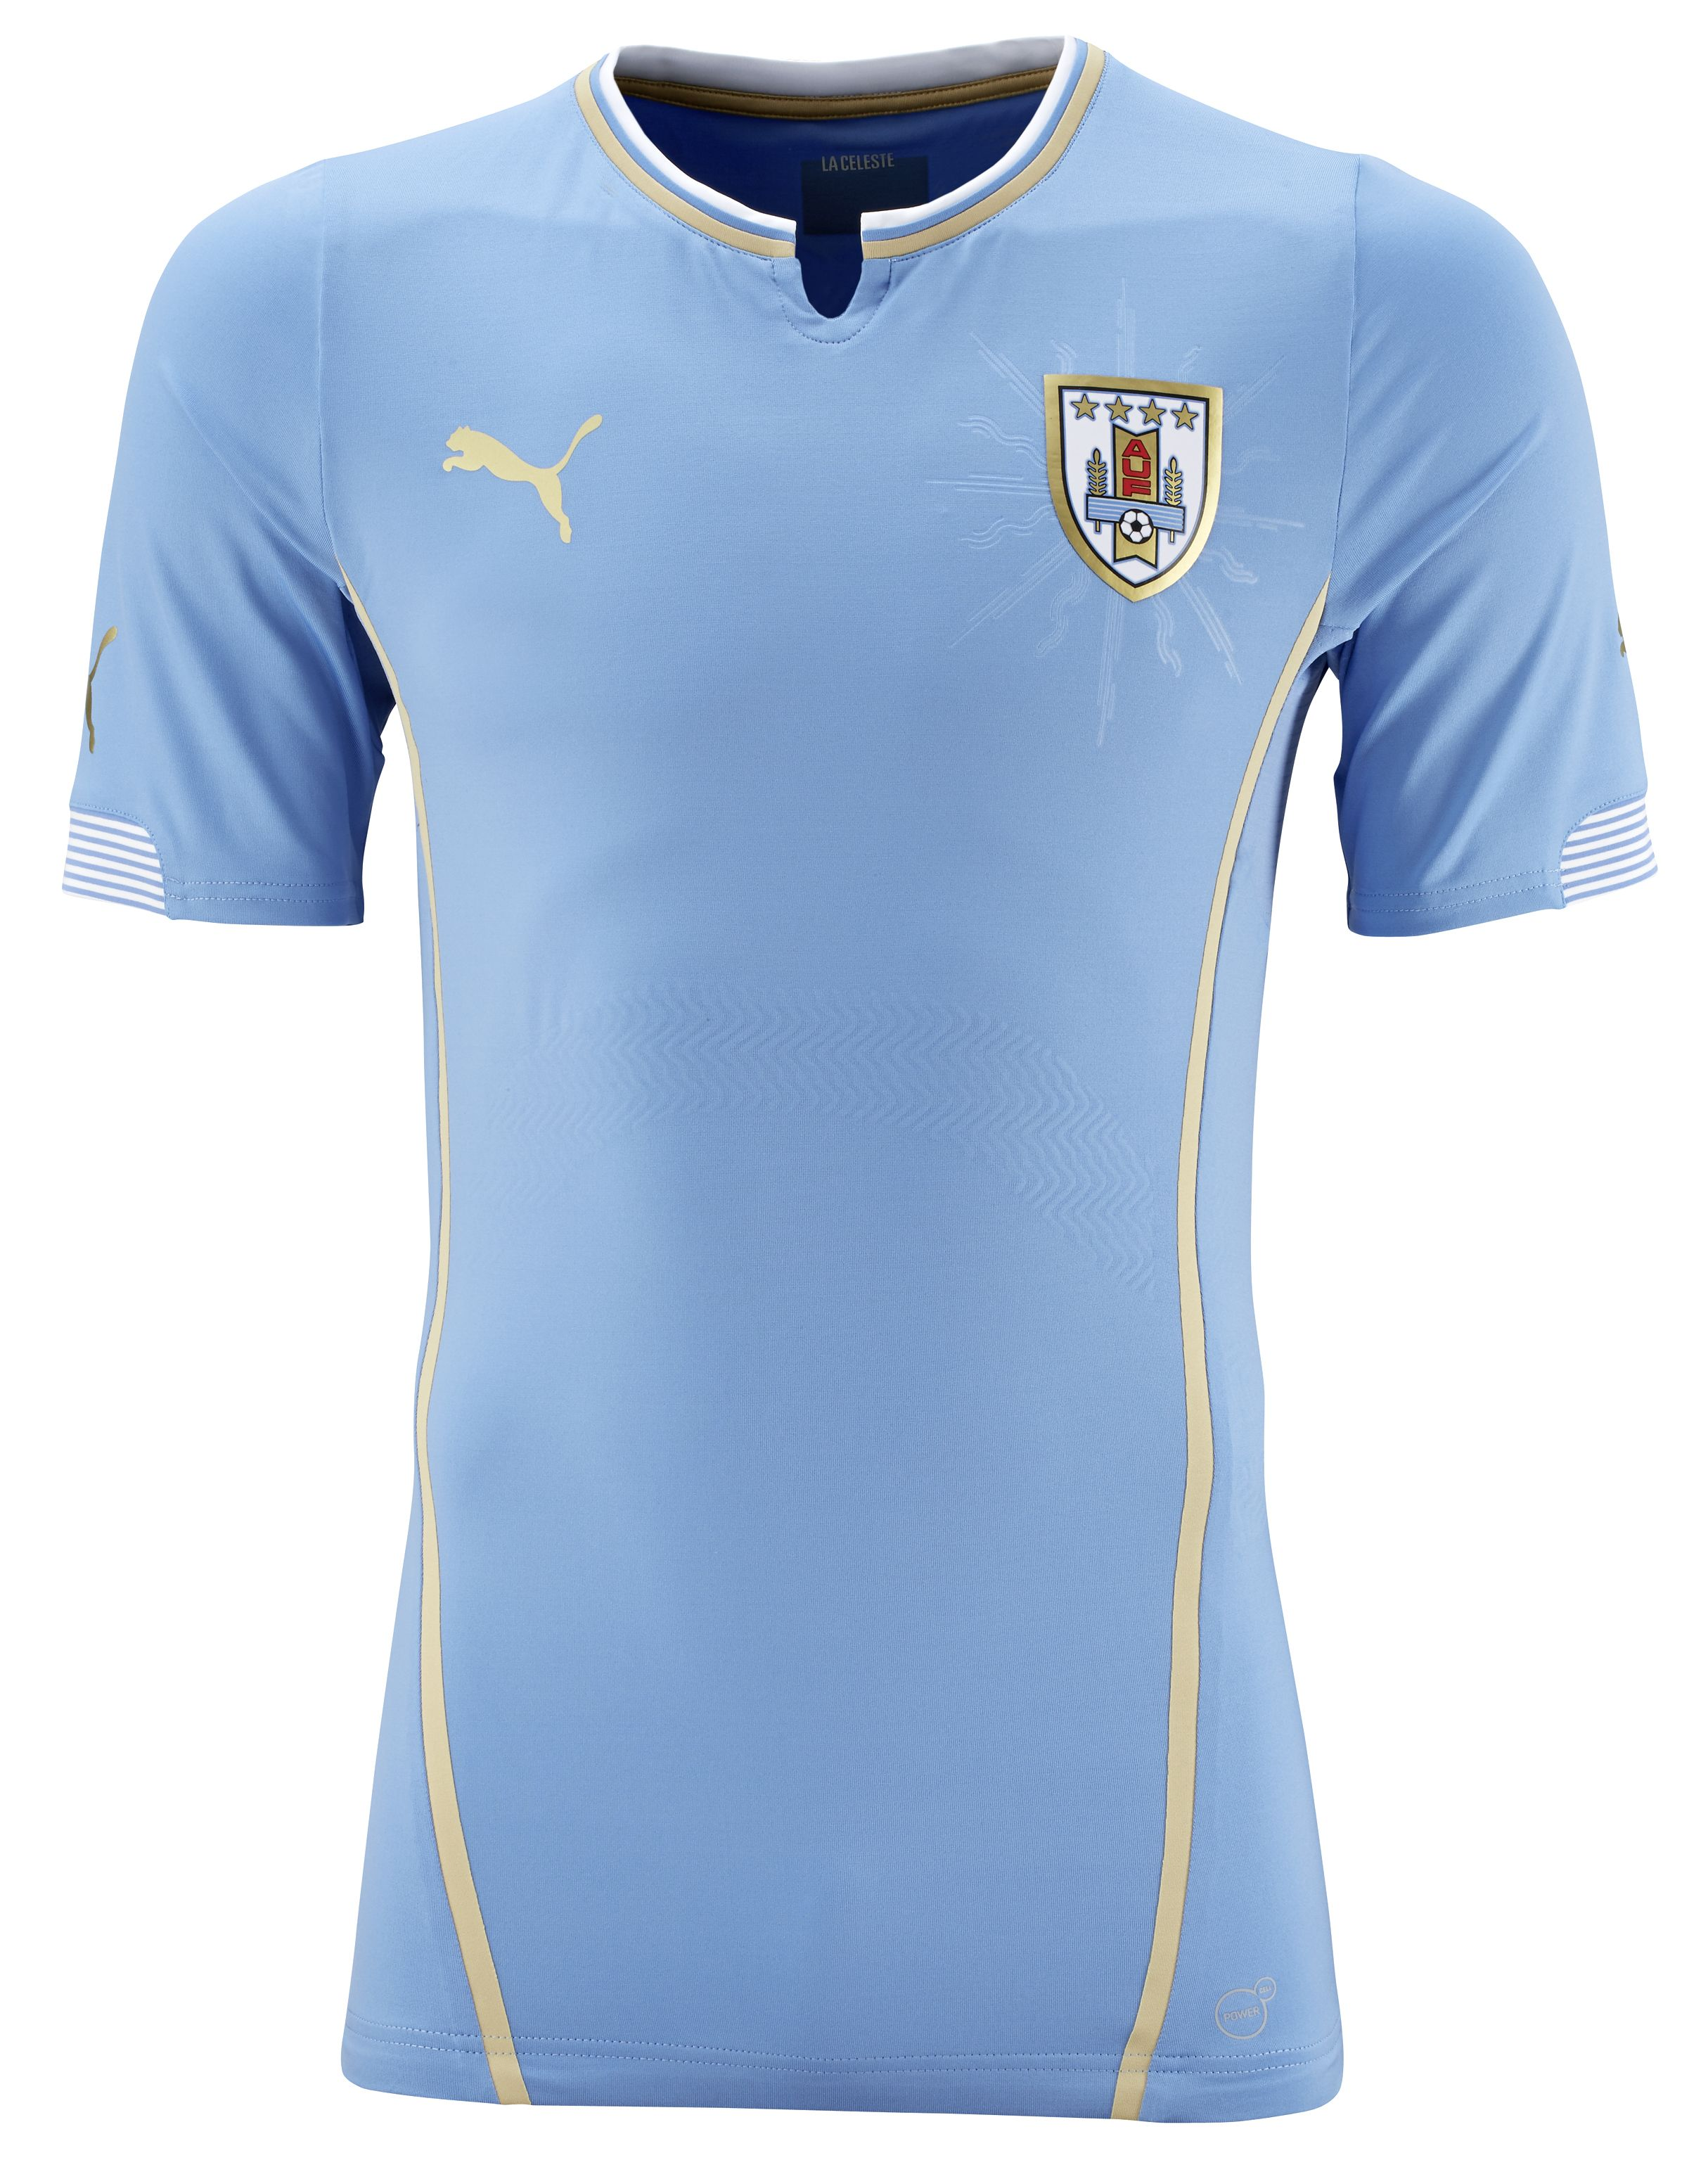 621a0dd87 Uruguay Home Kit for World Cup 2014  worldcup  brazil2014  uruguay  soccer   football  URU